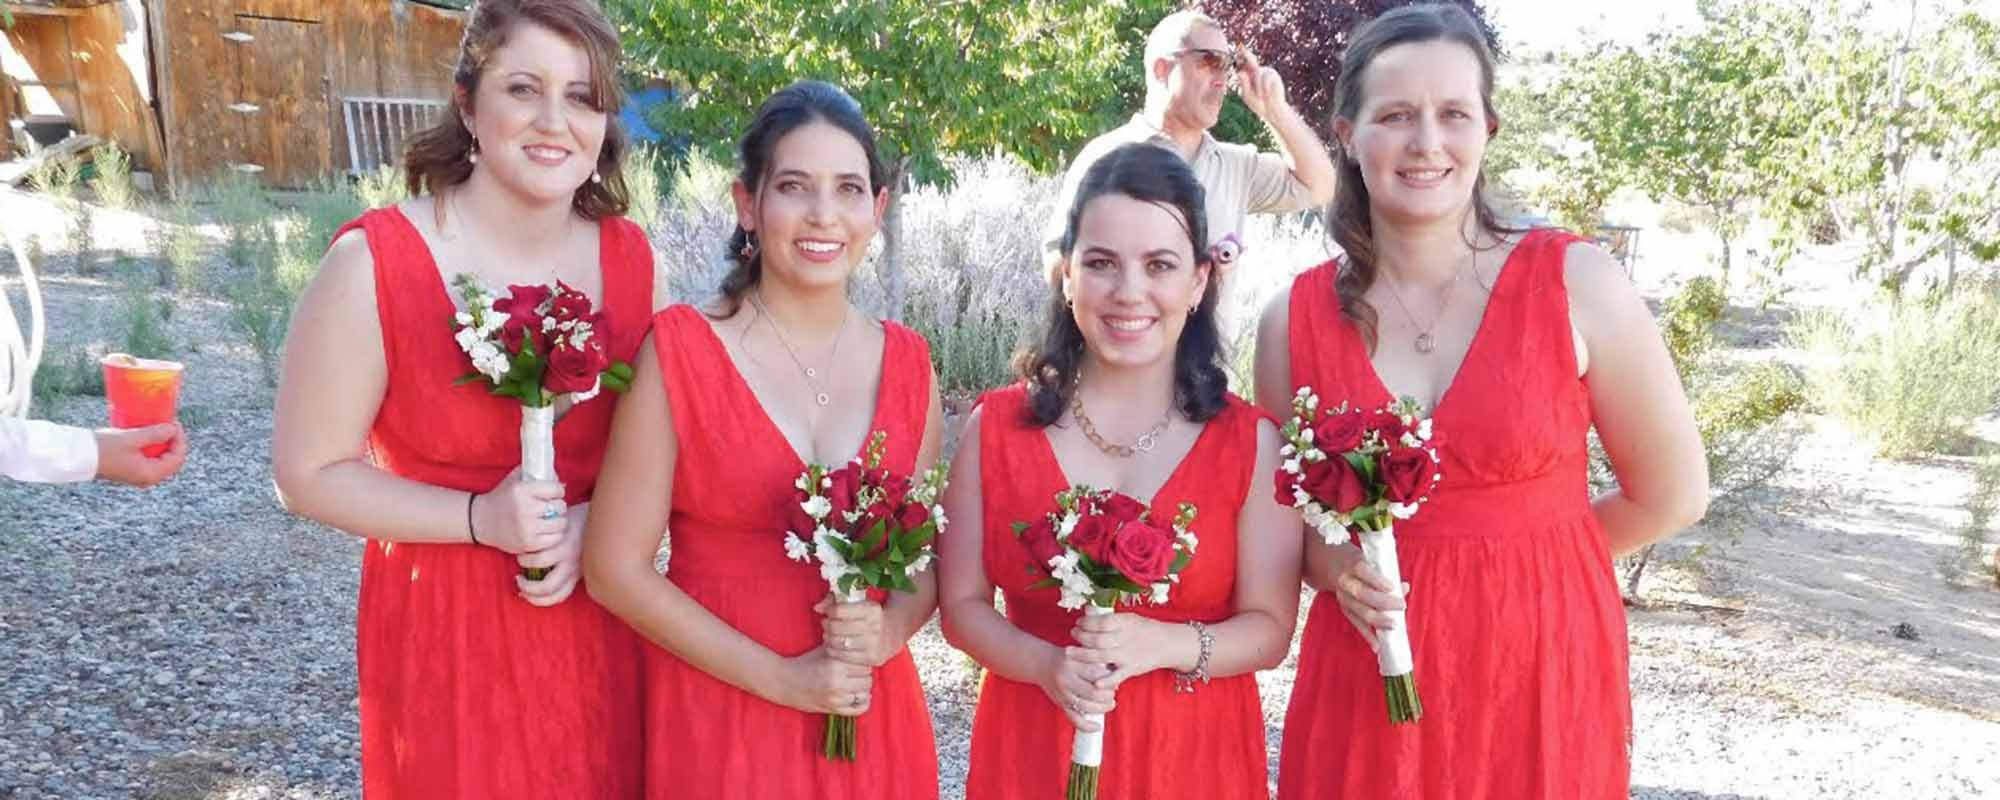 Bridesmaids in Red Dresses